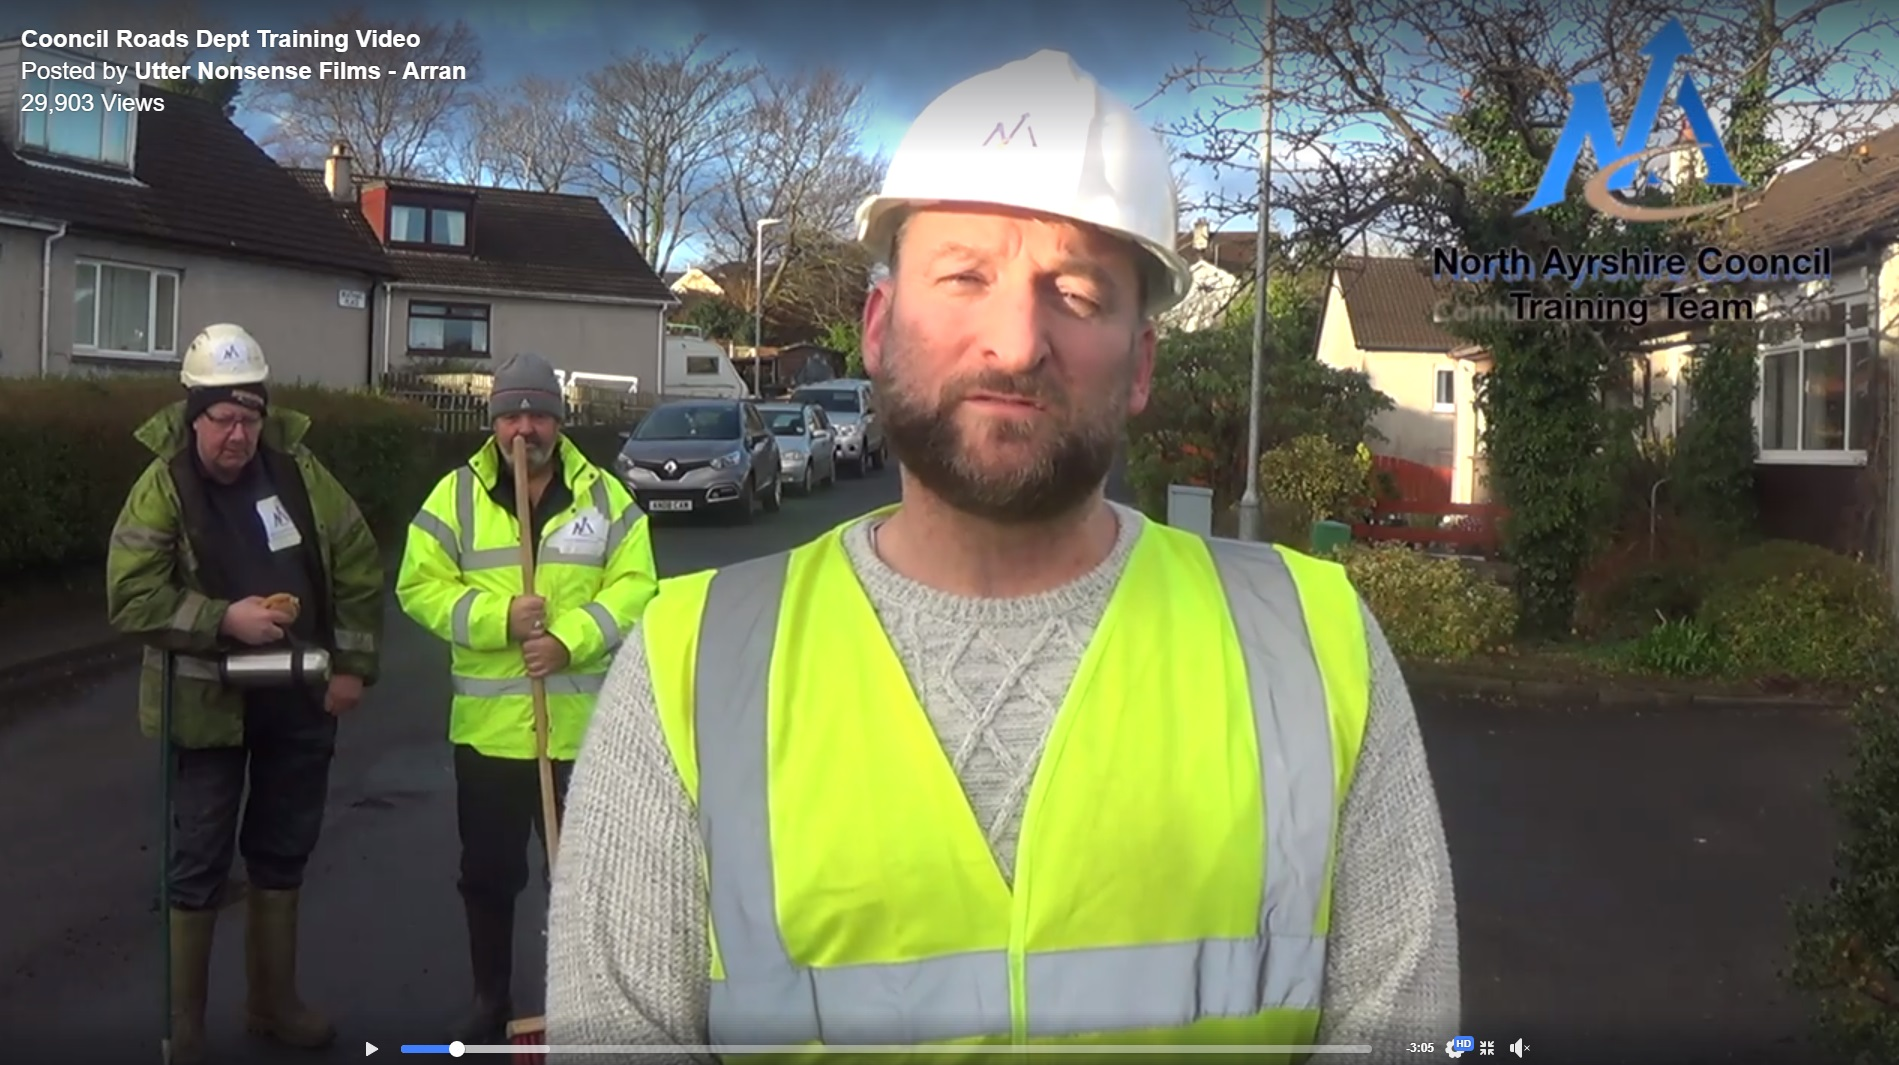 New spoof video takes a dig at North Ayrshire's roads